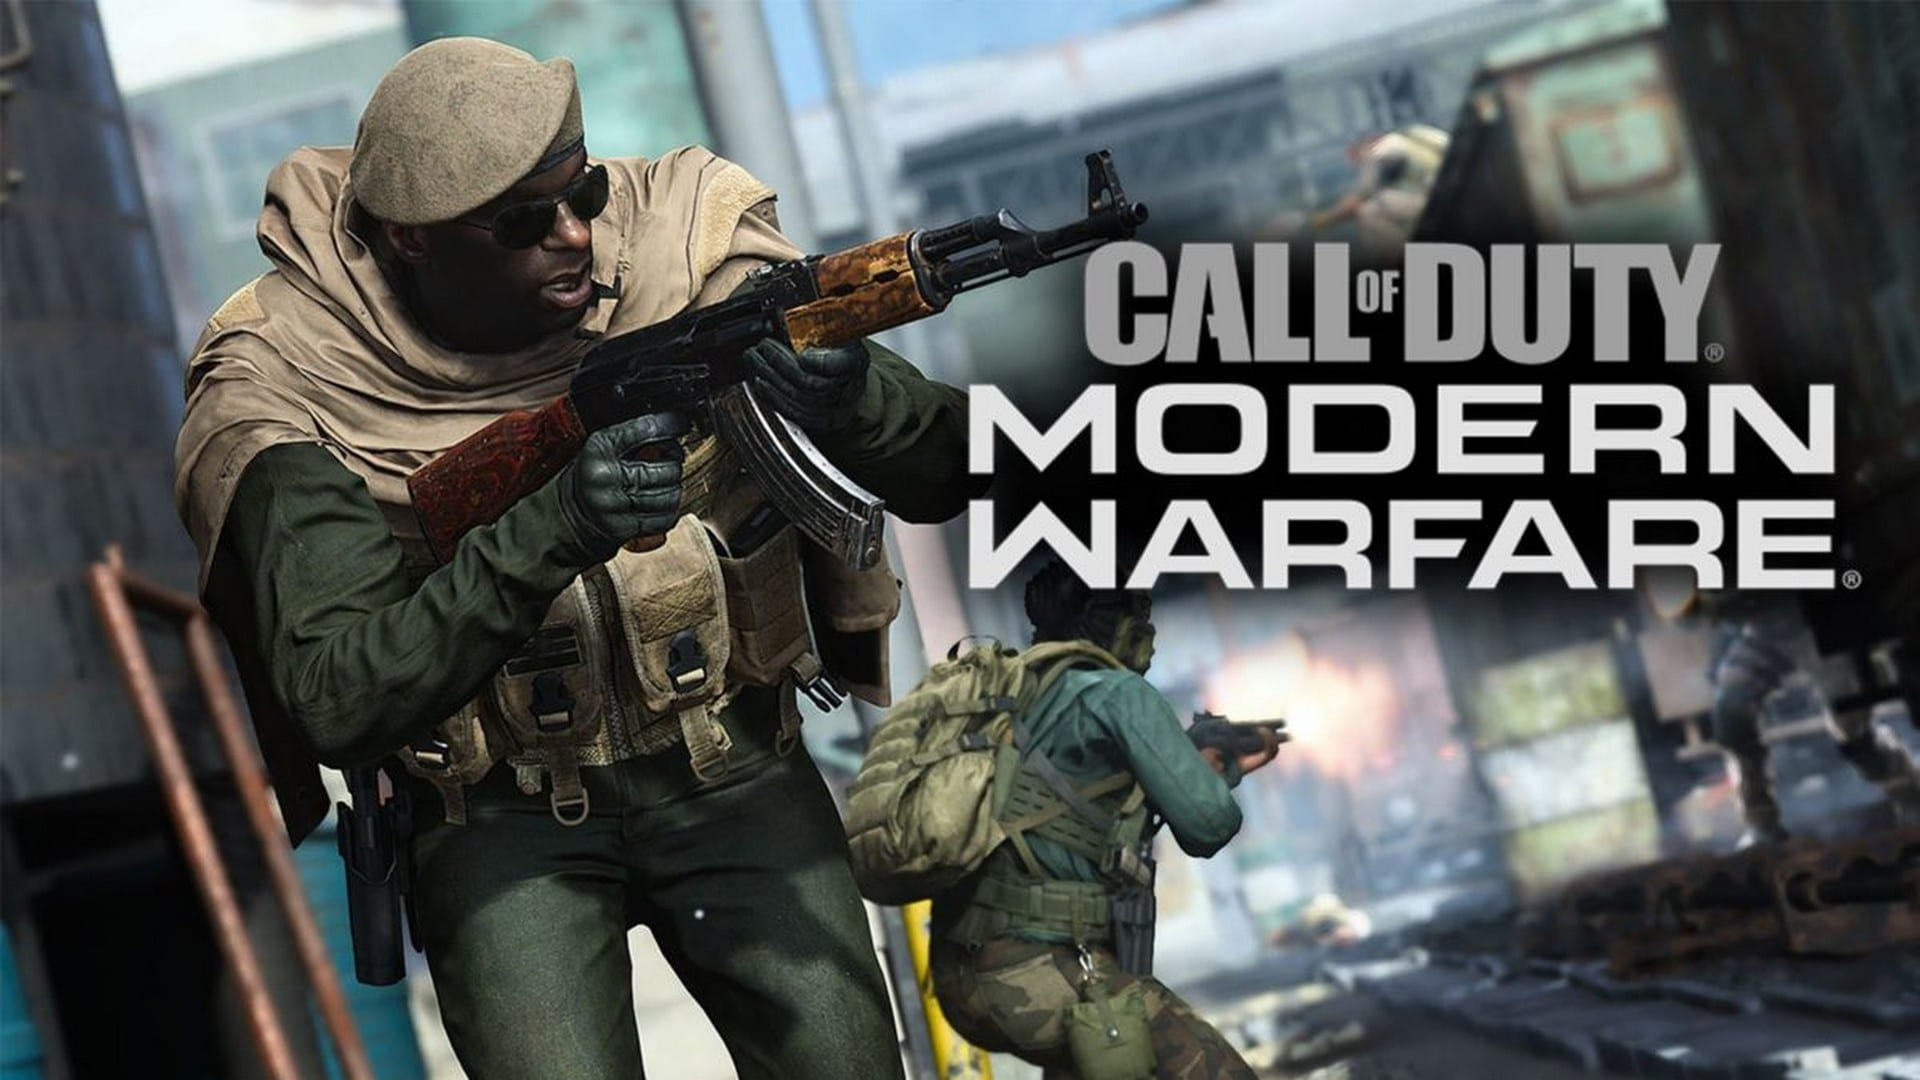 #PSPlusPlays Kicks Off Monthly Competition With Call of Duty: Modern Warfare